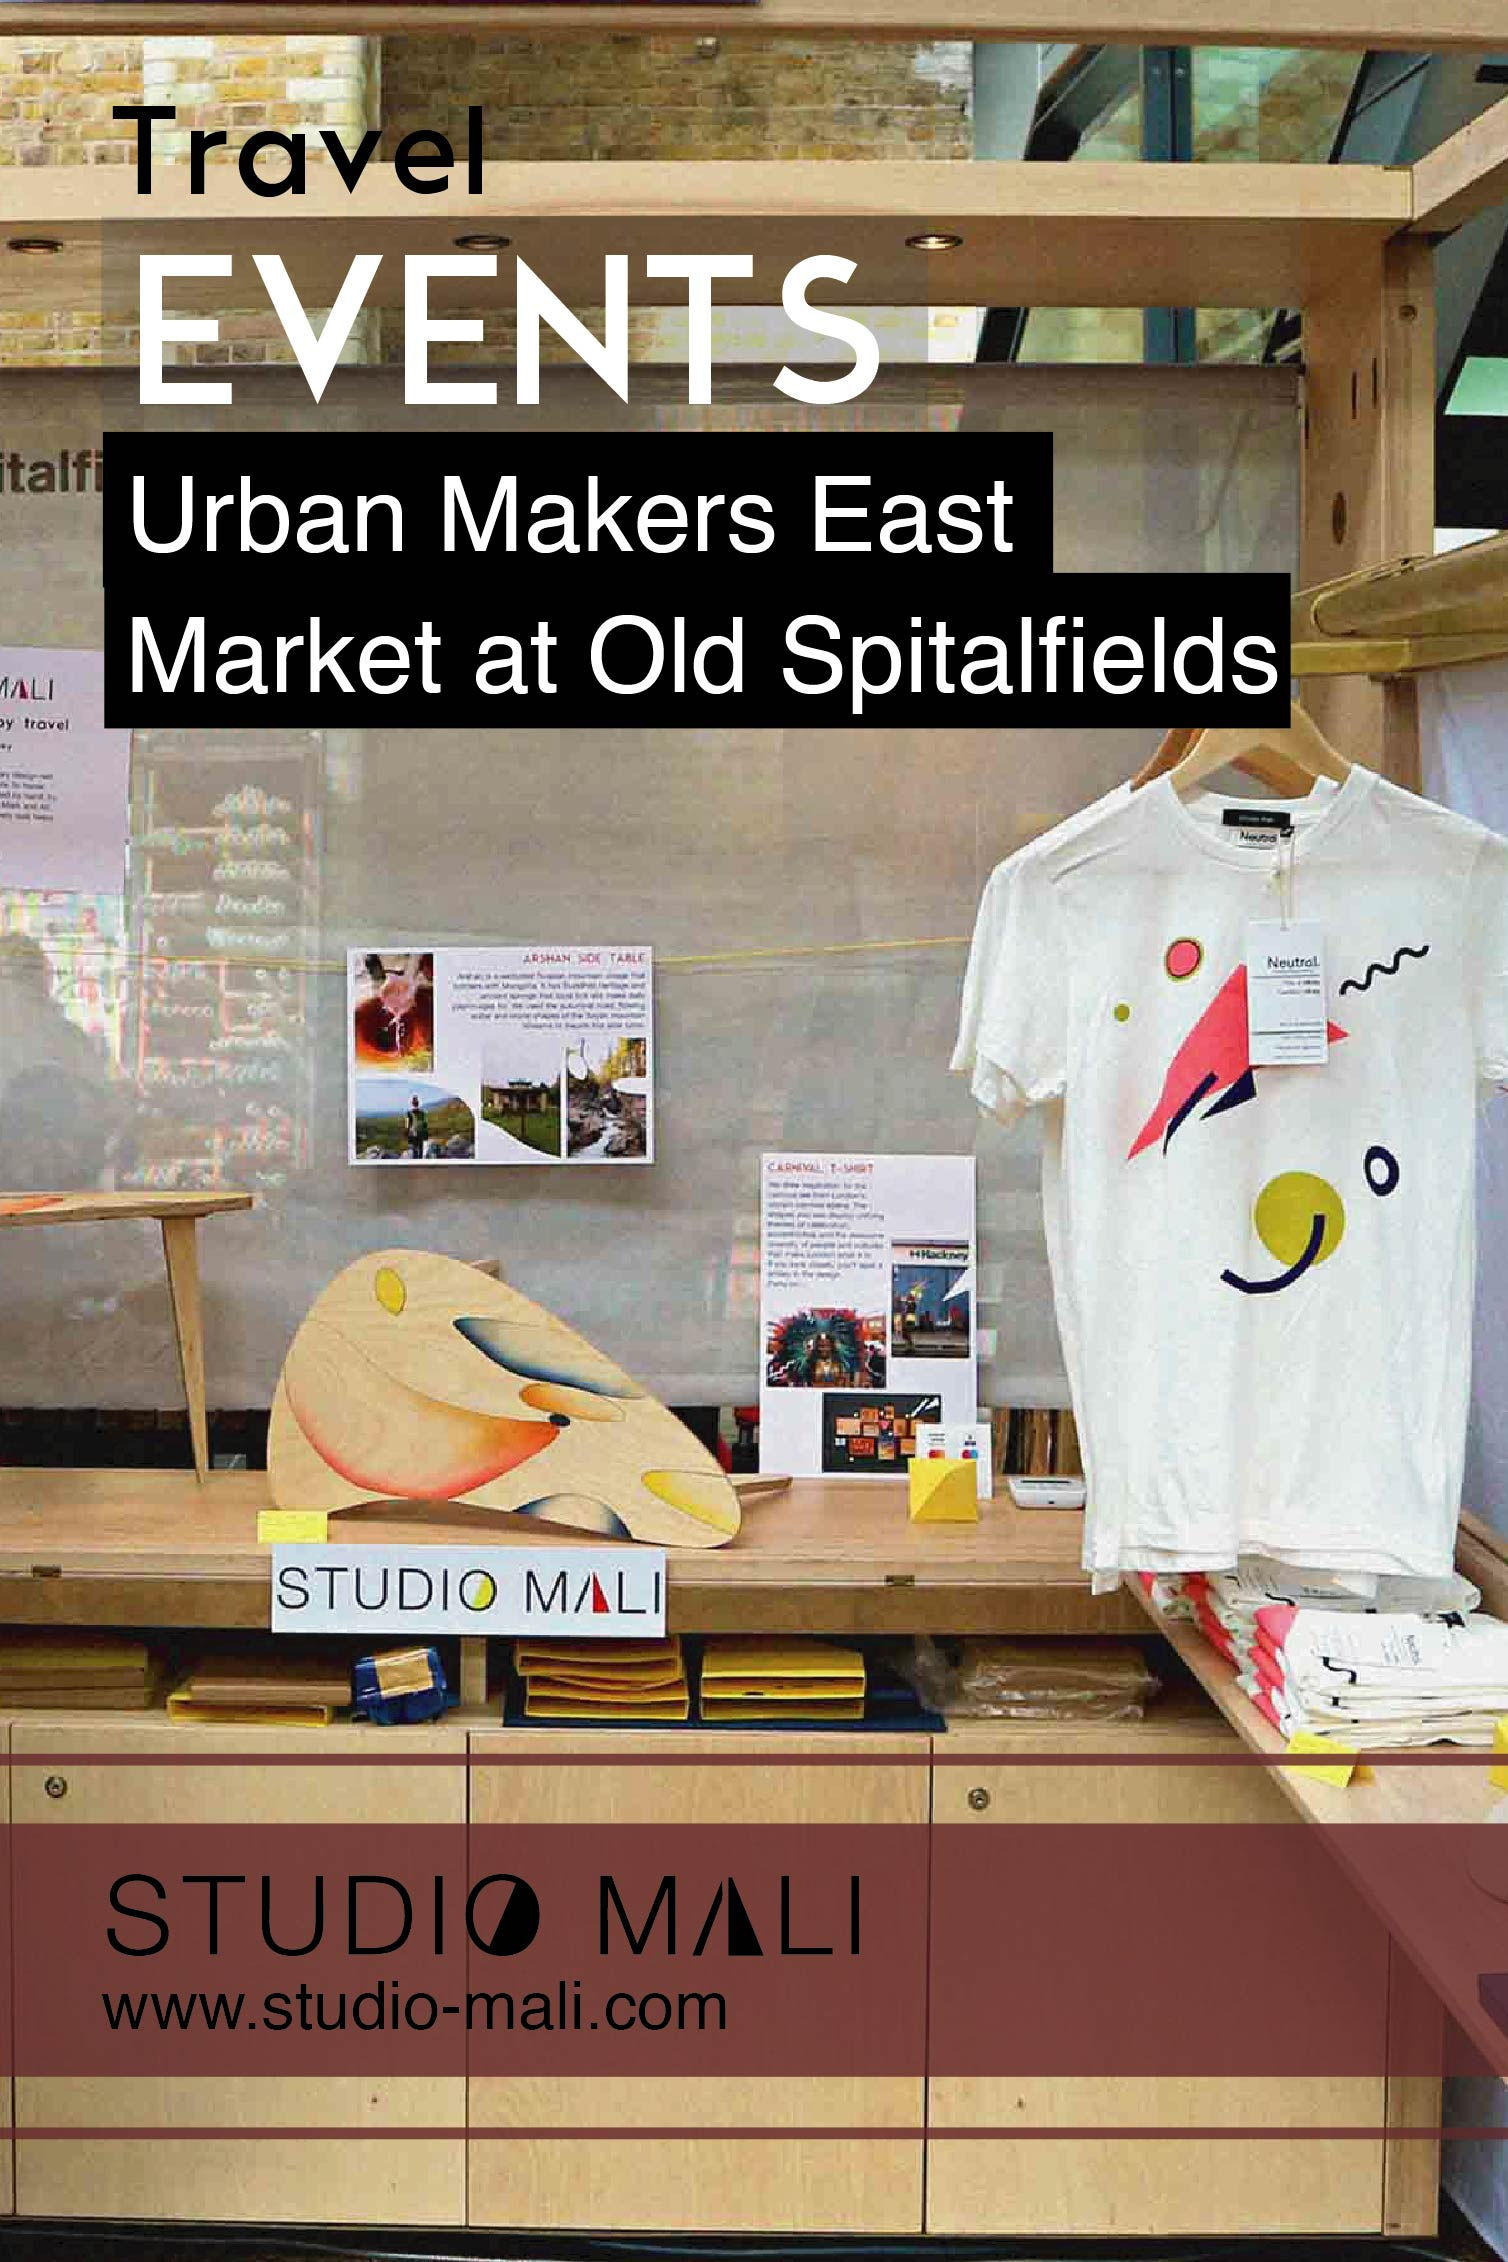 Events - Urban Makers East At Old Spitalfields, by Studio Mali